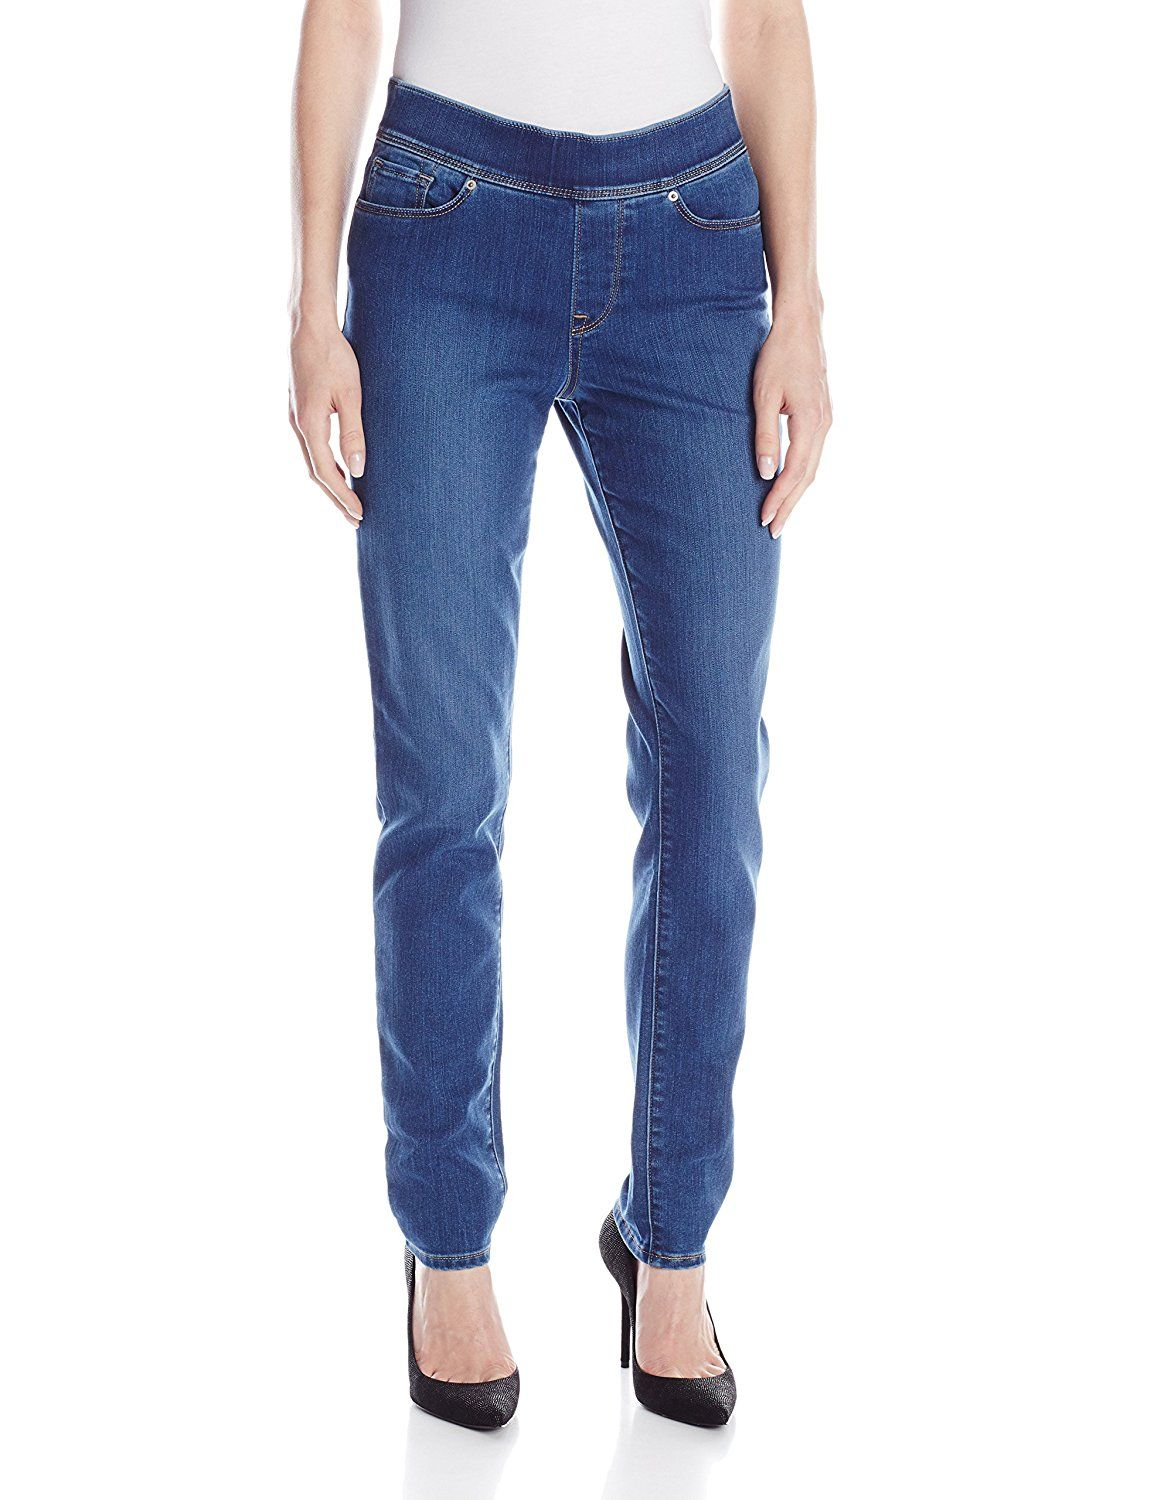 2db14f9175f Levis Womens Perfectly Slimming Pull-On Skinny    This is an Amazon  Affiliate link. Want to know more